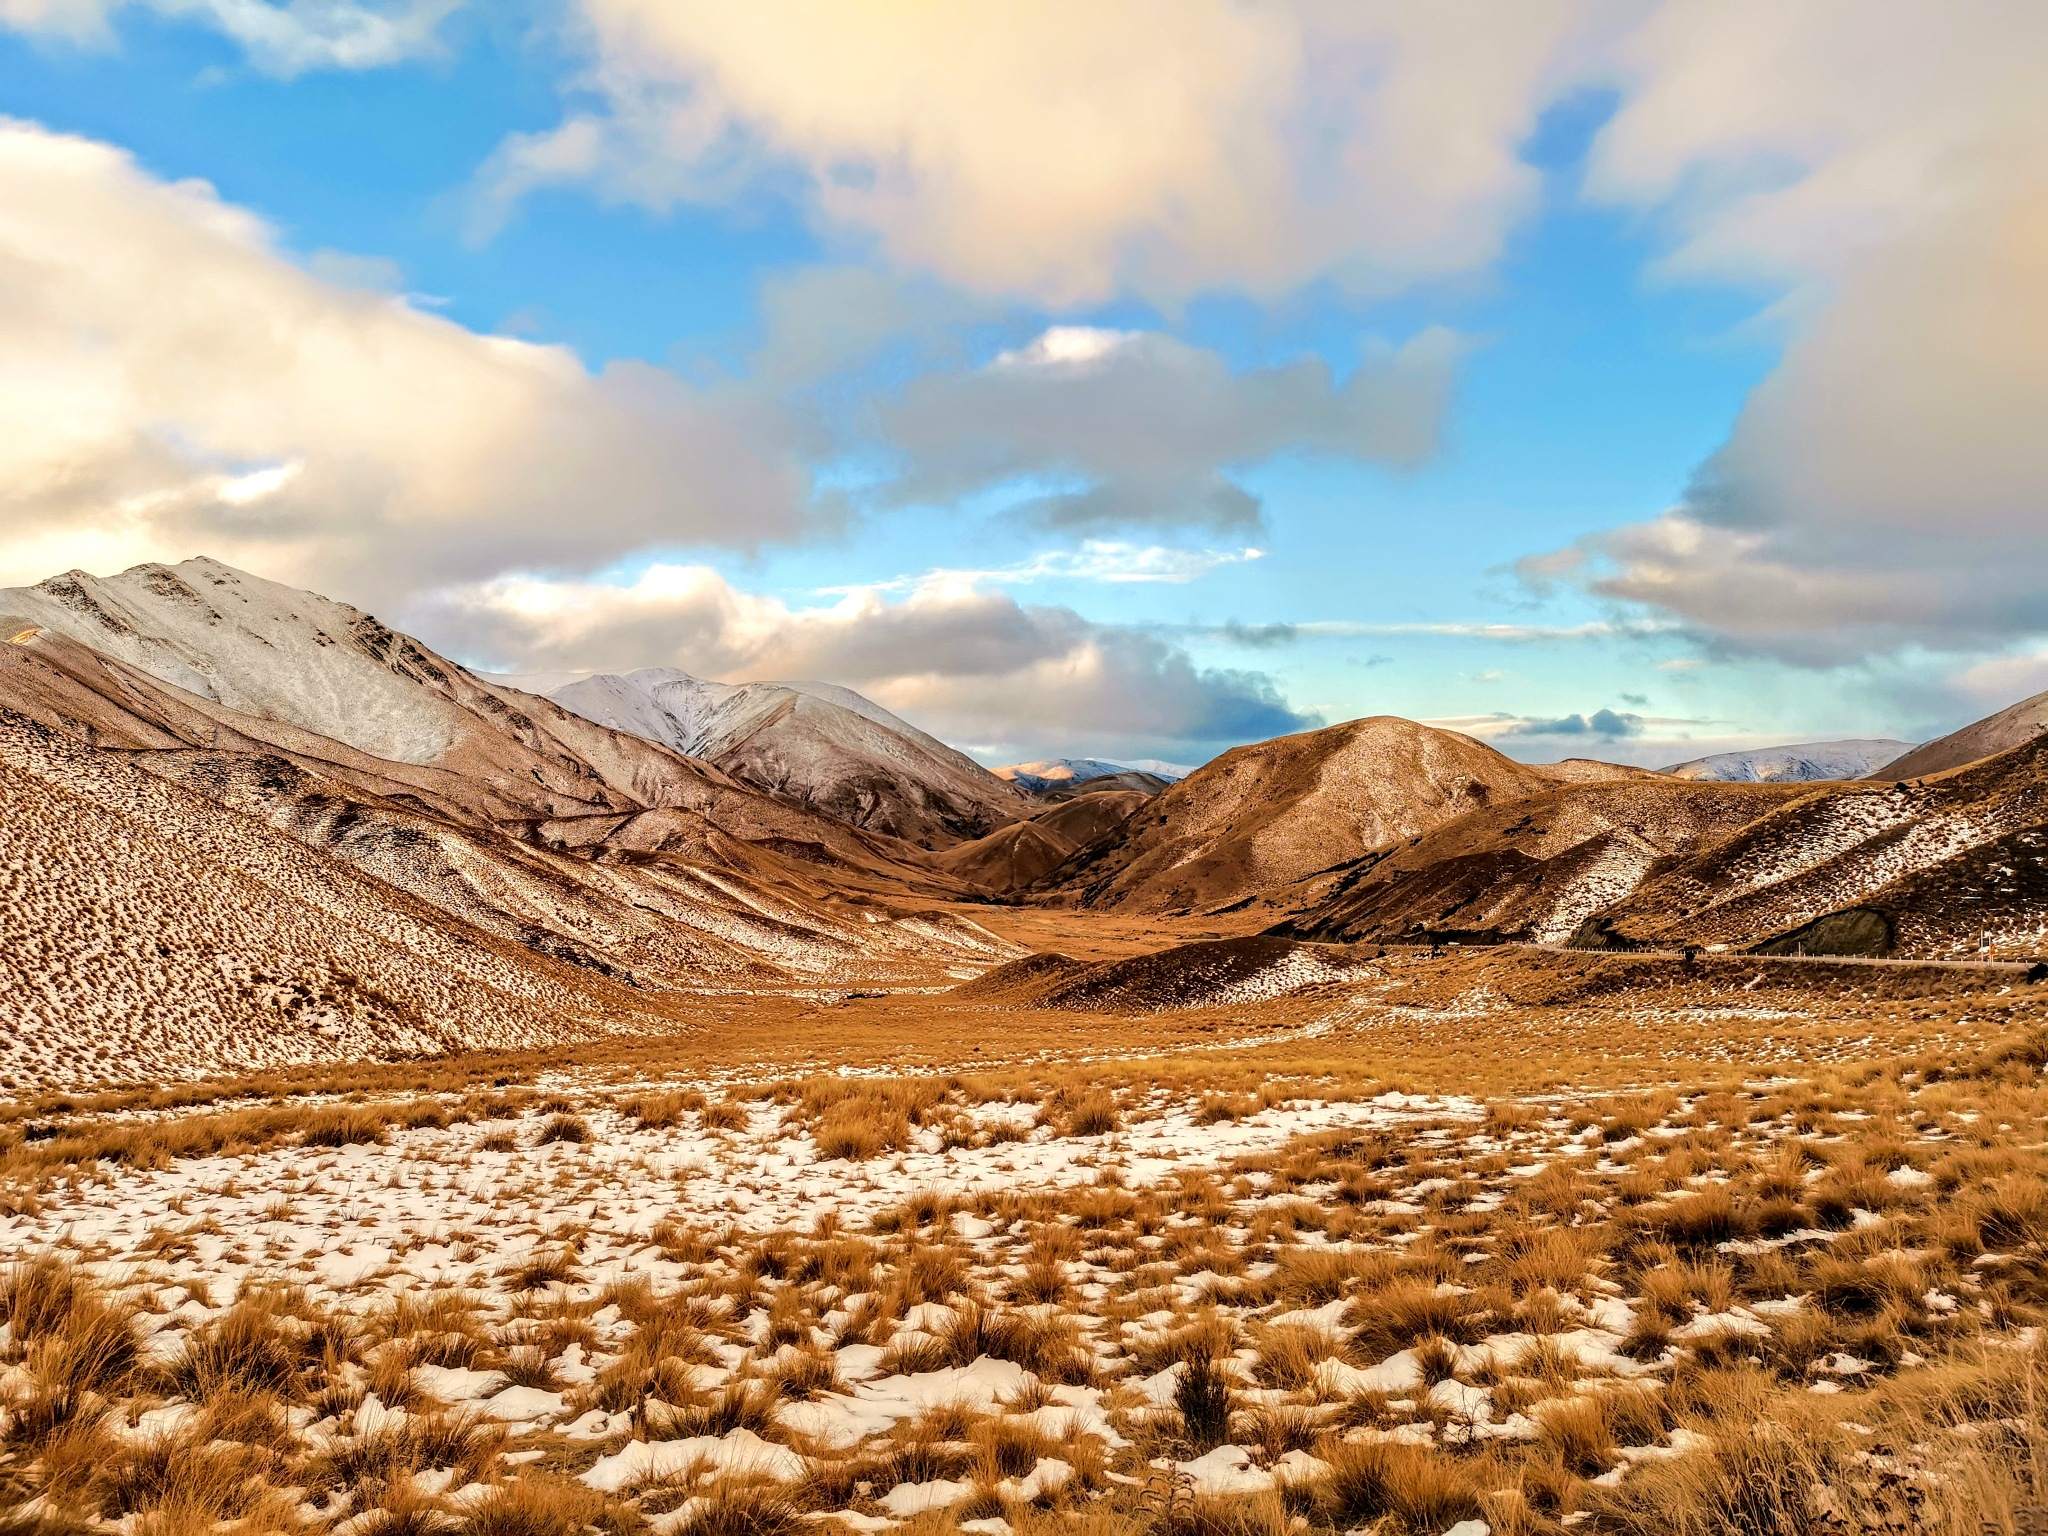 scenery at Lindis Pass by chewptan